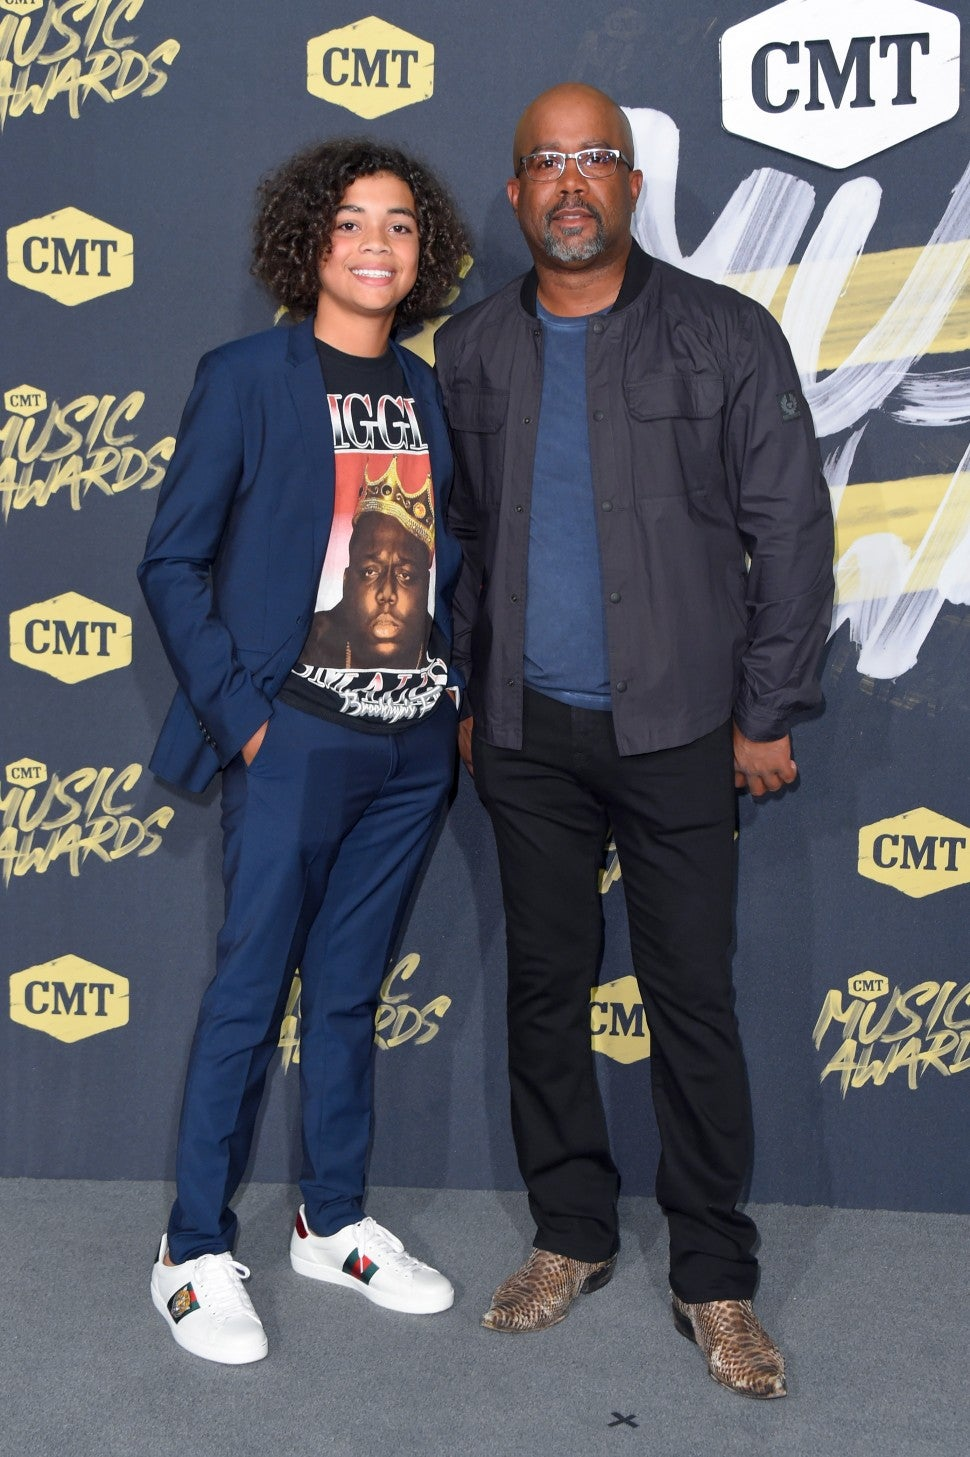 Darius Rucker and son Jack attend the 2018 CMT Music Awards at   Bridgestone Arena on June 6, 2018 in Nashville, Tennessee.